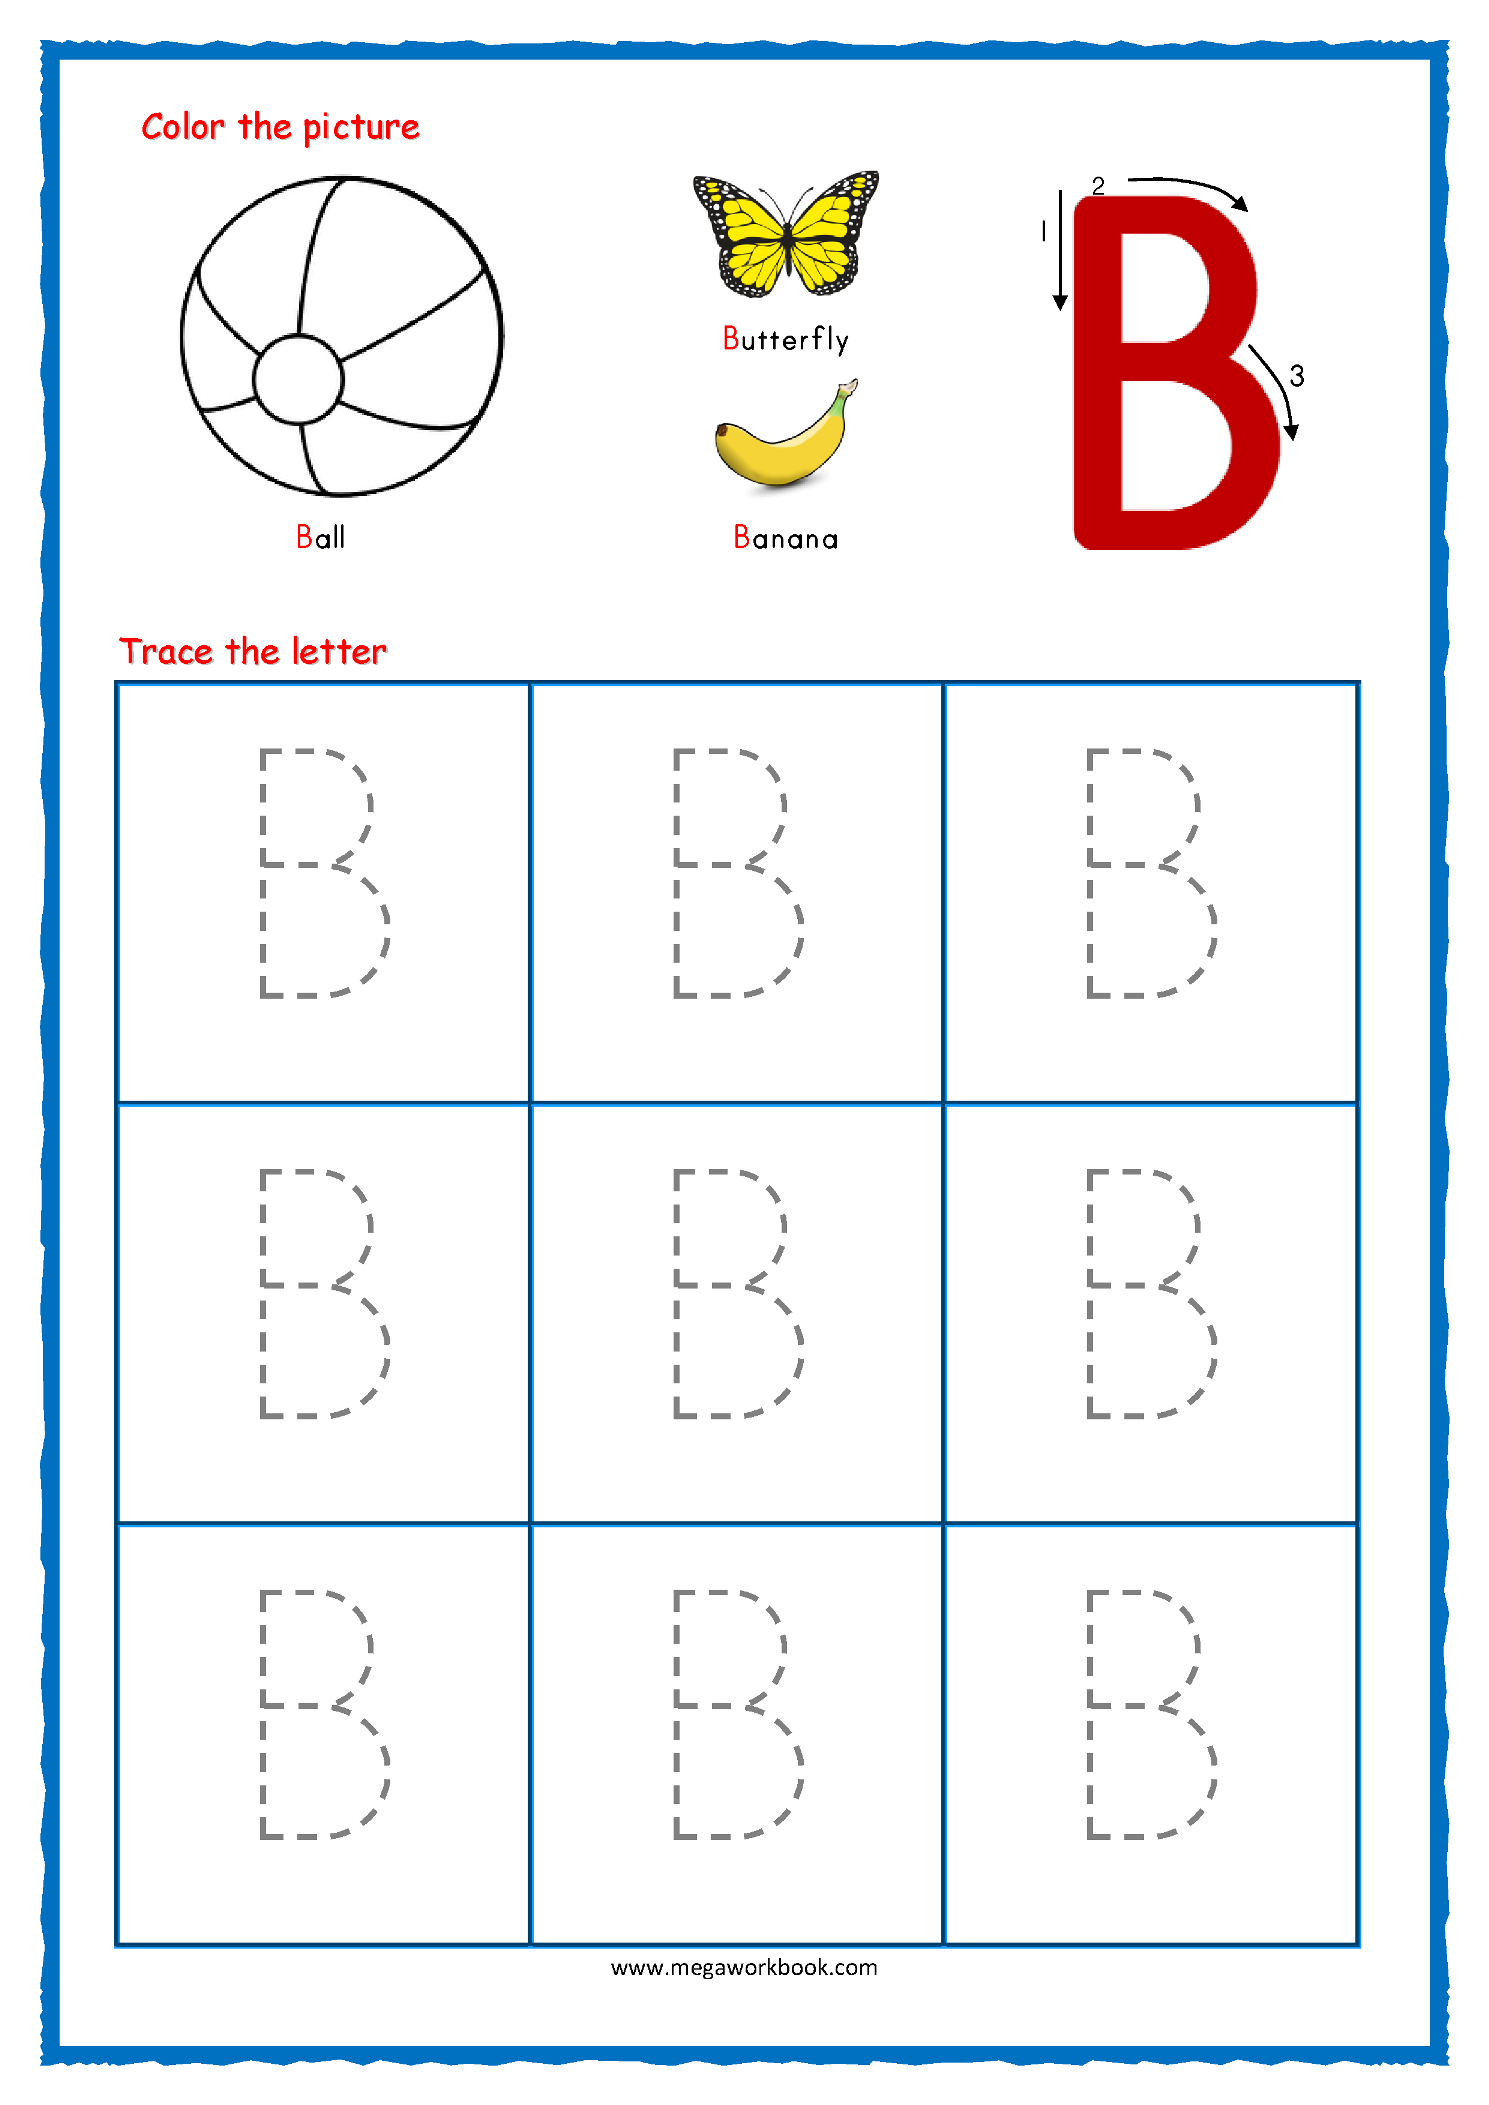 Tracing Letters - Alphabet Tracing - Capital Letters in Printable Tracing Letters For Kids